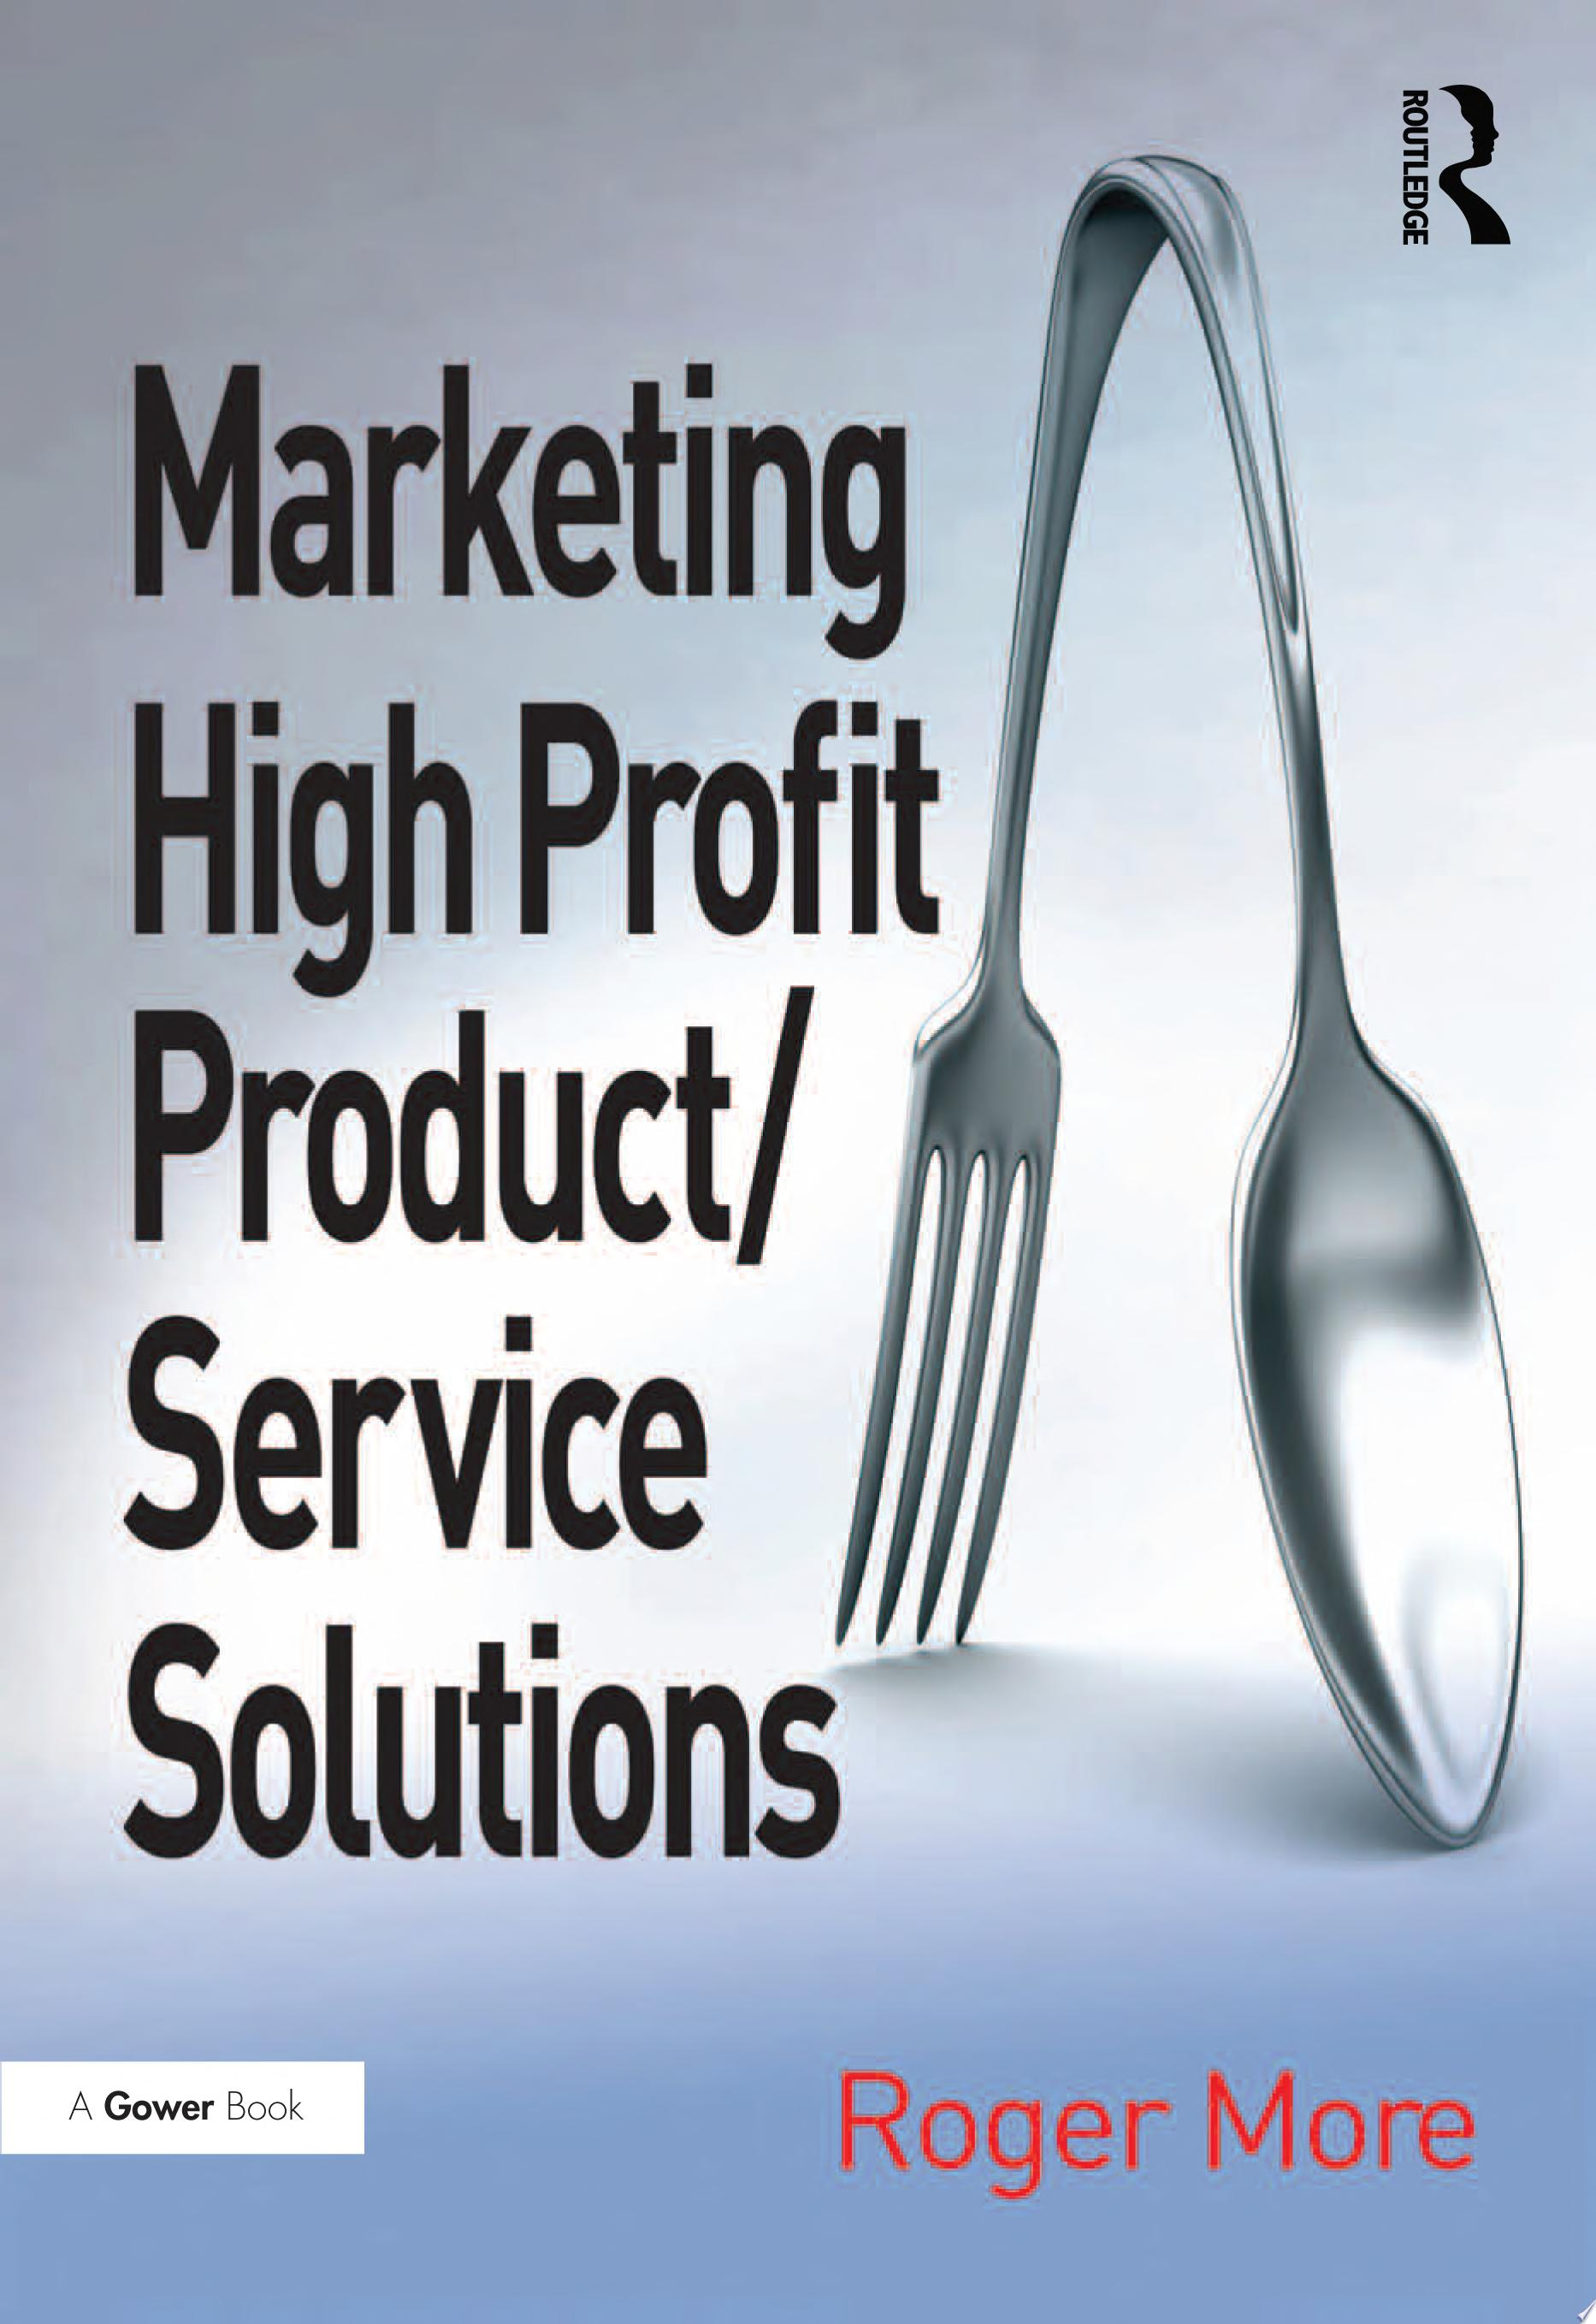 Marketing High Profit Product Service Solutions